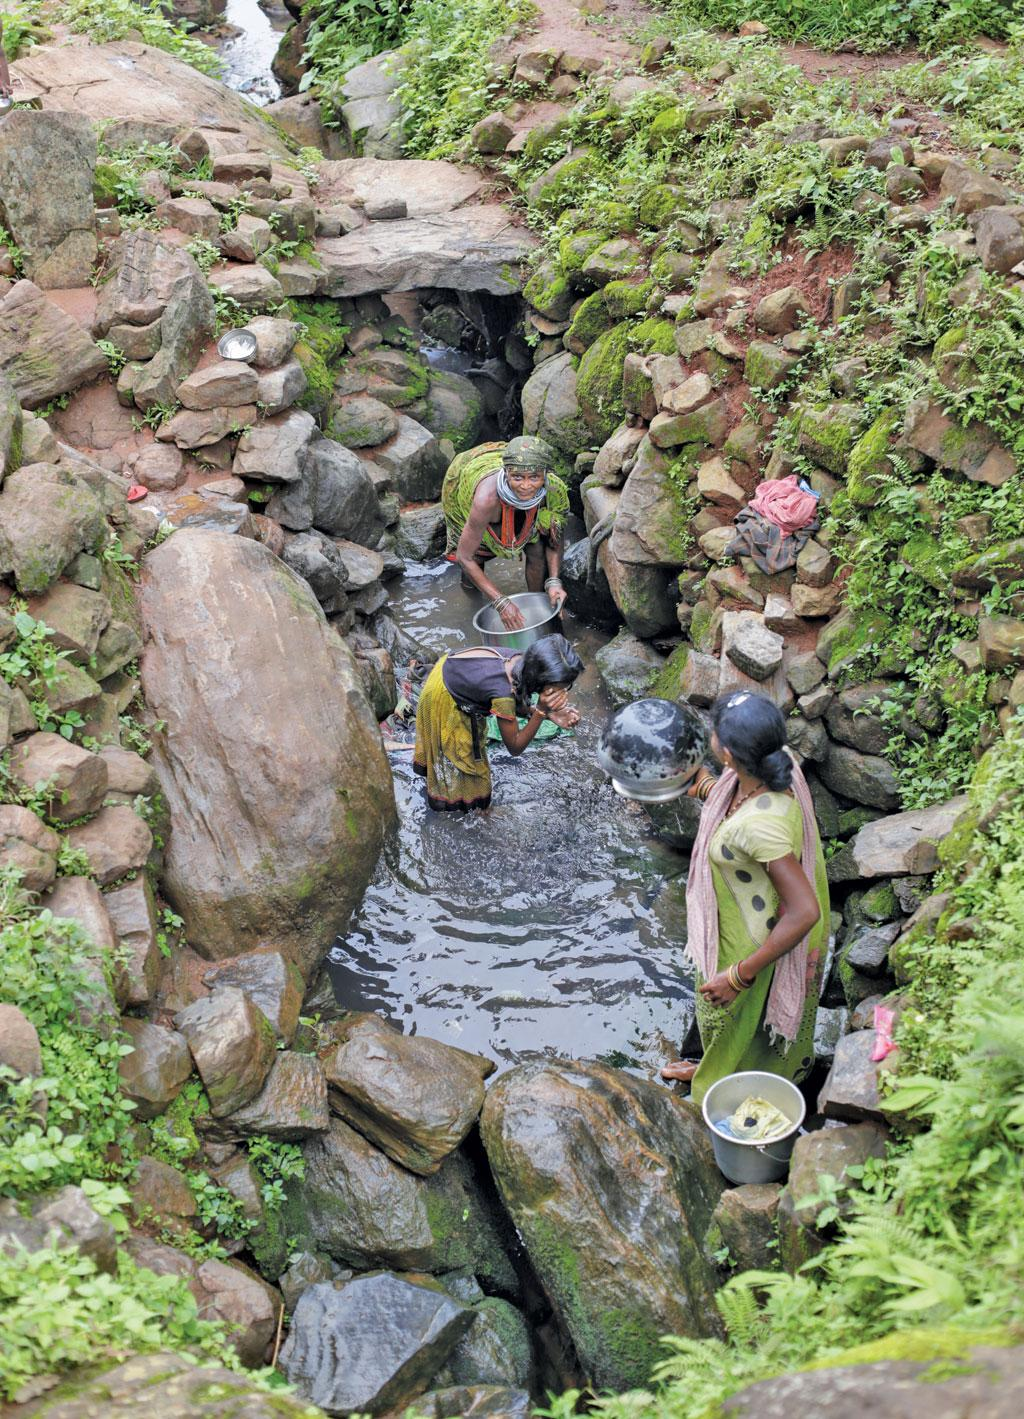 A stream